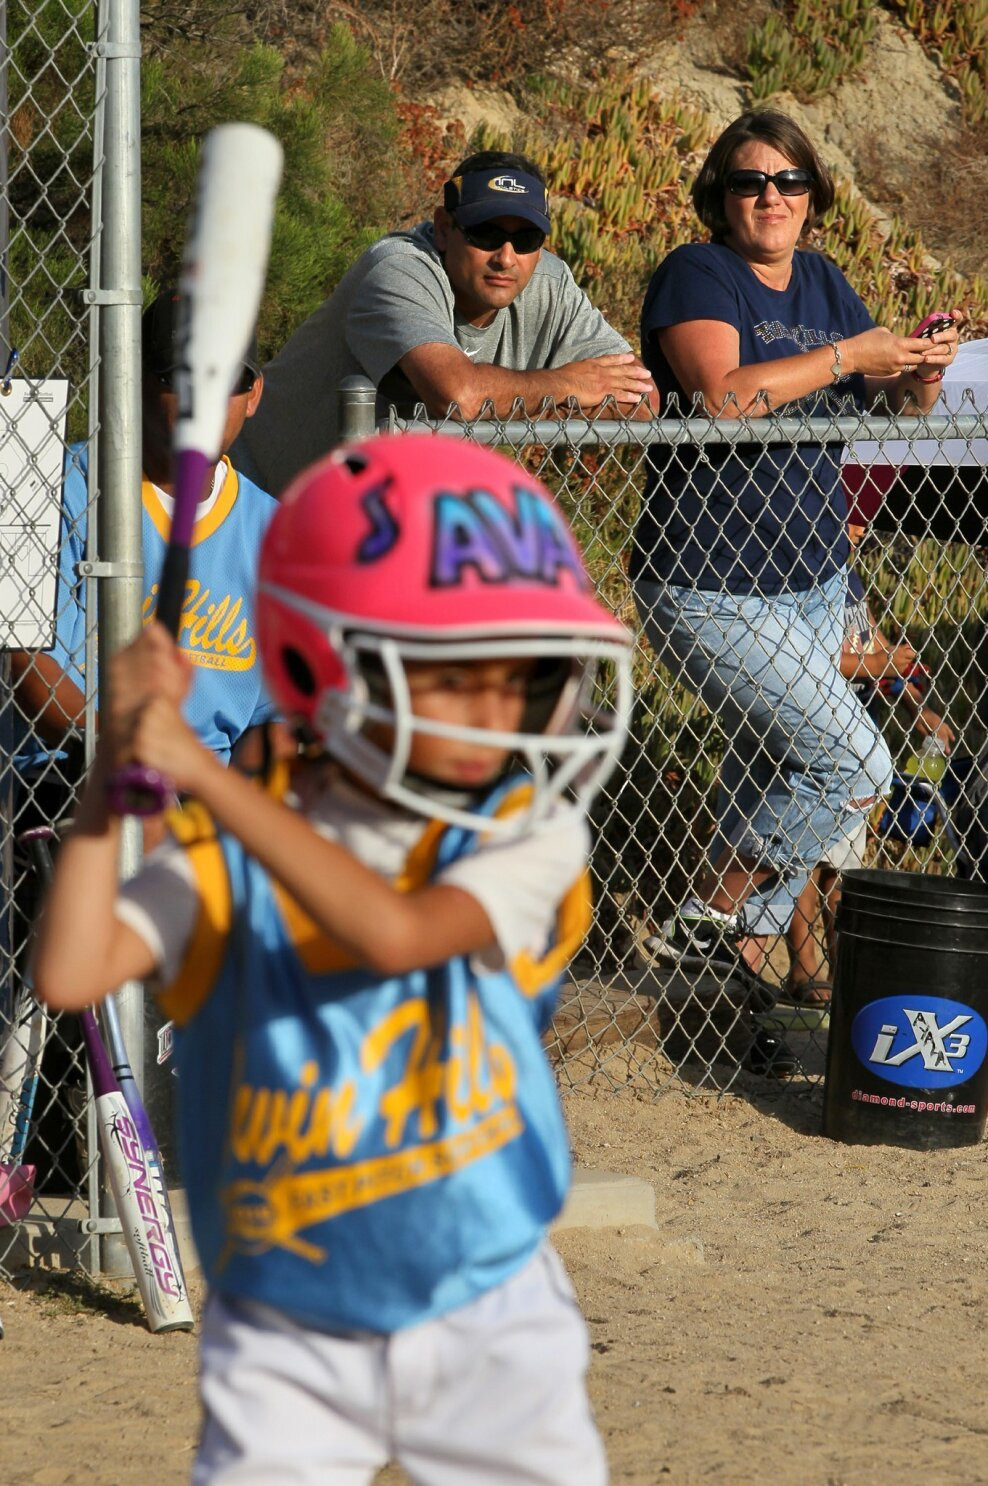 There's much more to this softball mom - The San Diego Union